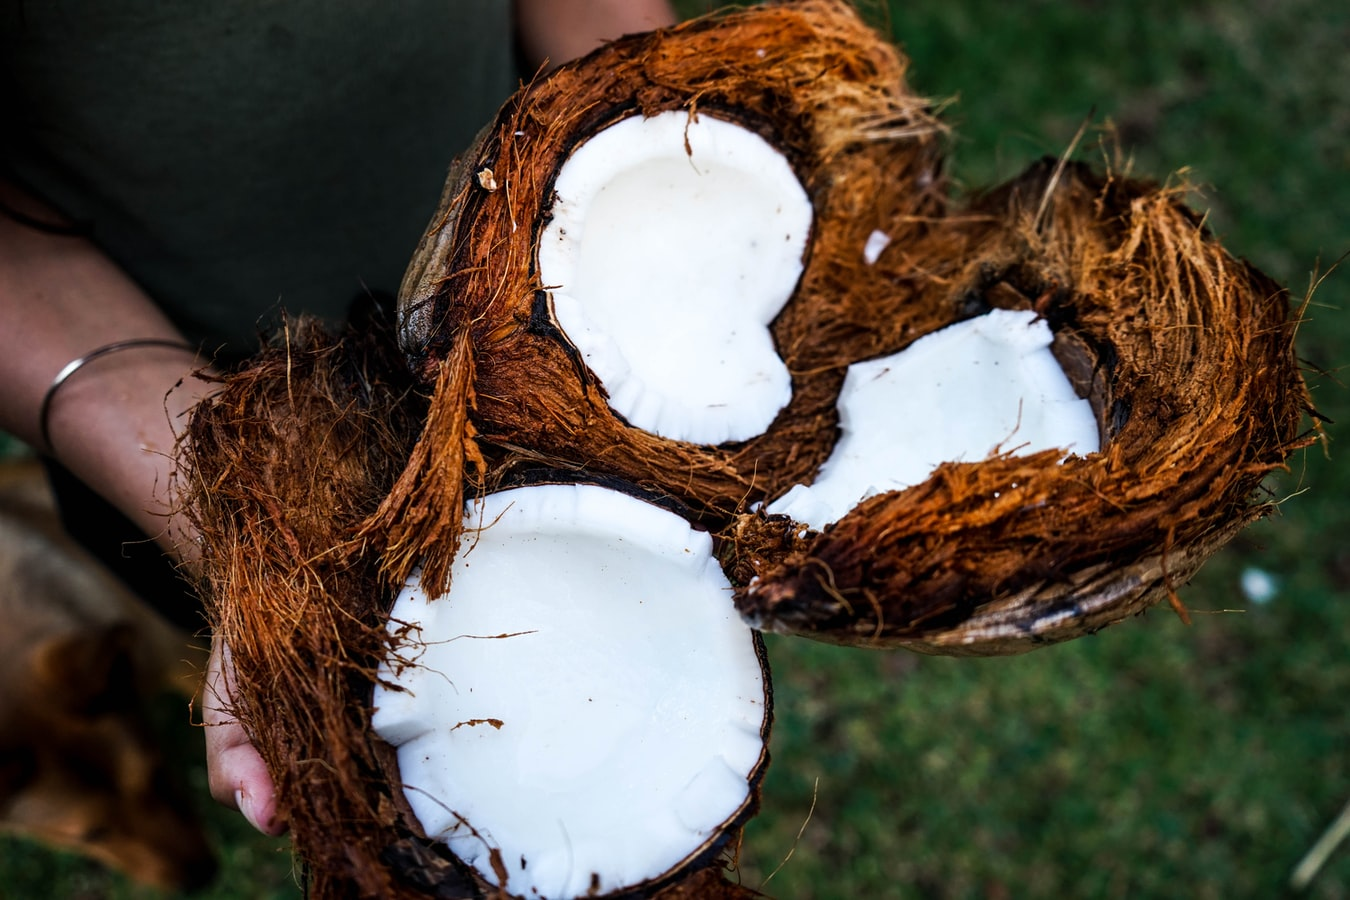 Breaking! Coconut oil is good for COVID-19 say scientists 36